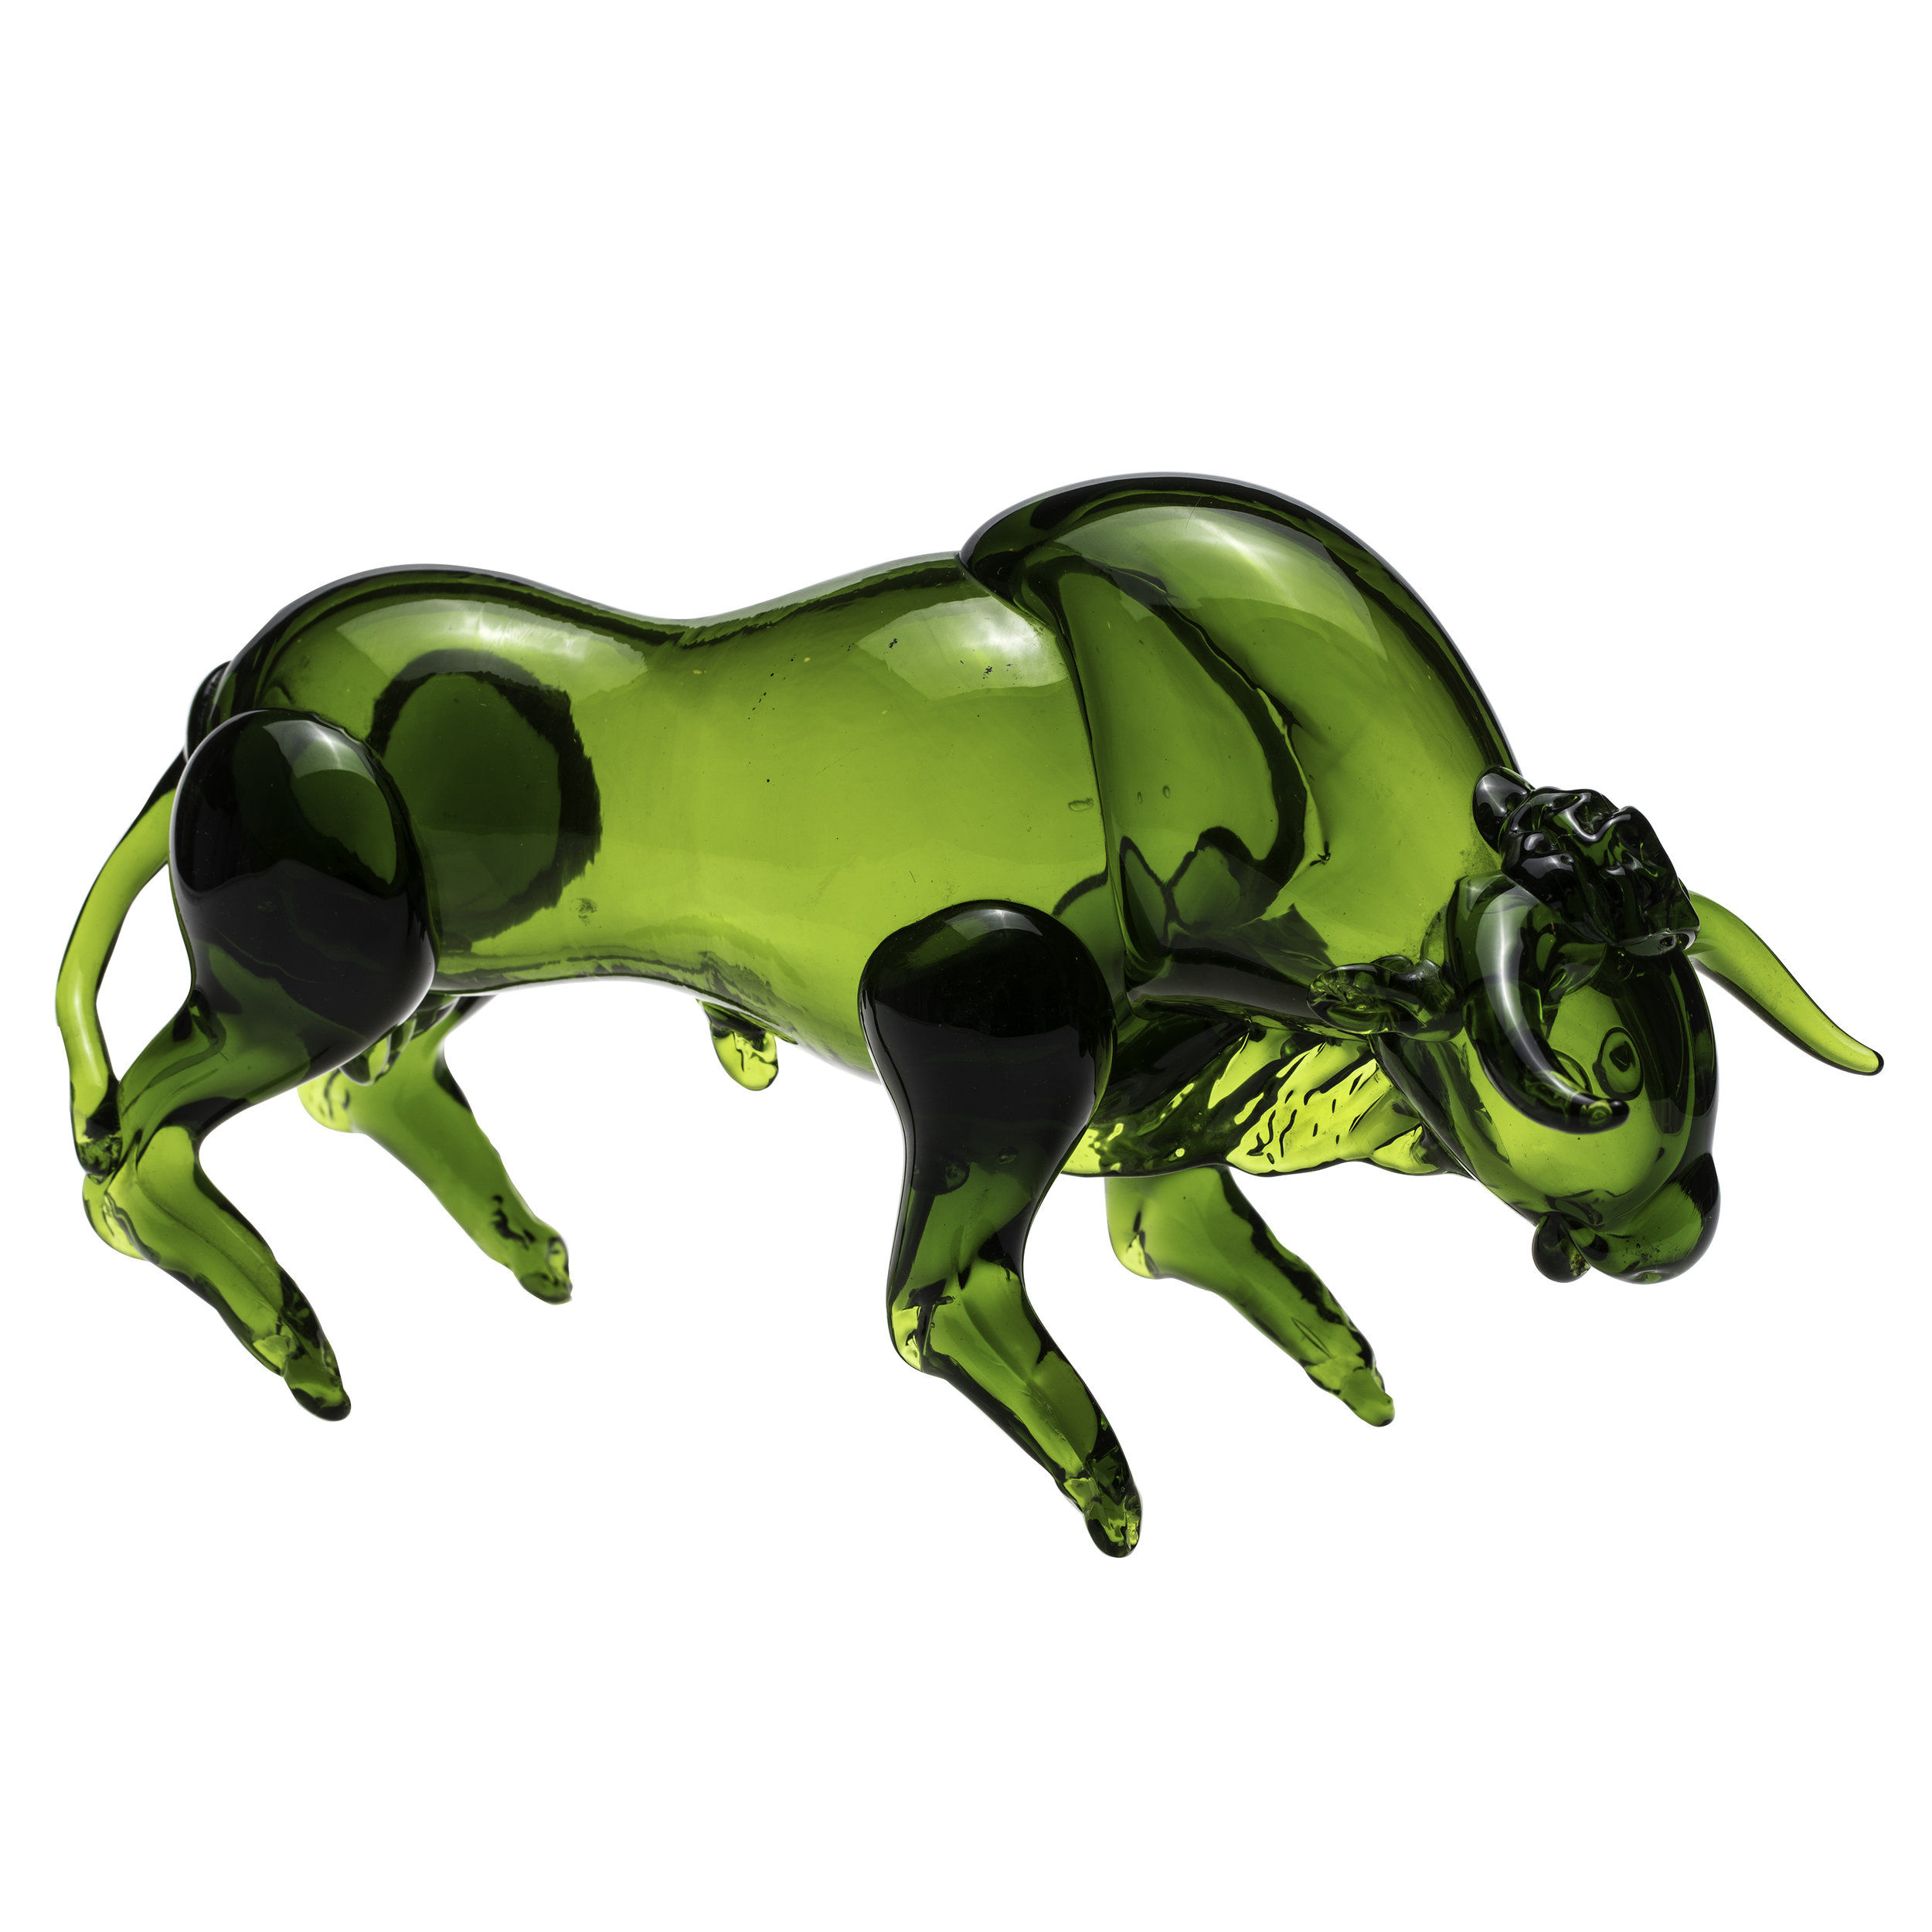 Bull-MIrano Glass-4739-Edit-Edit.jpg